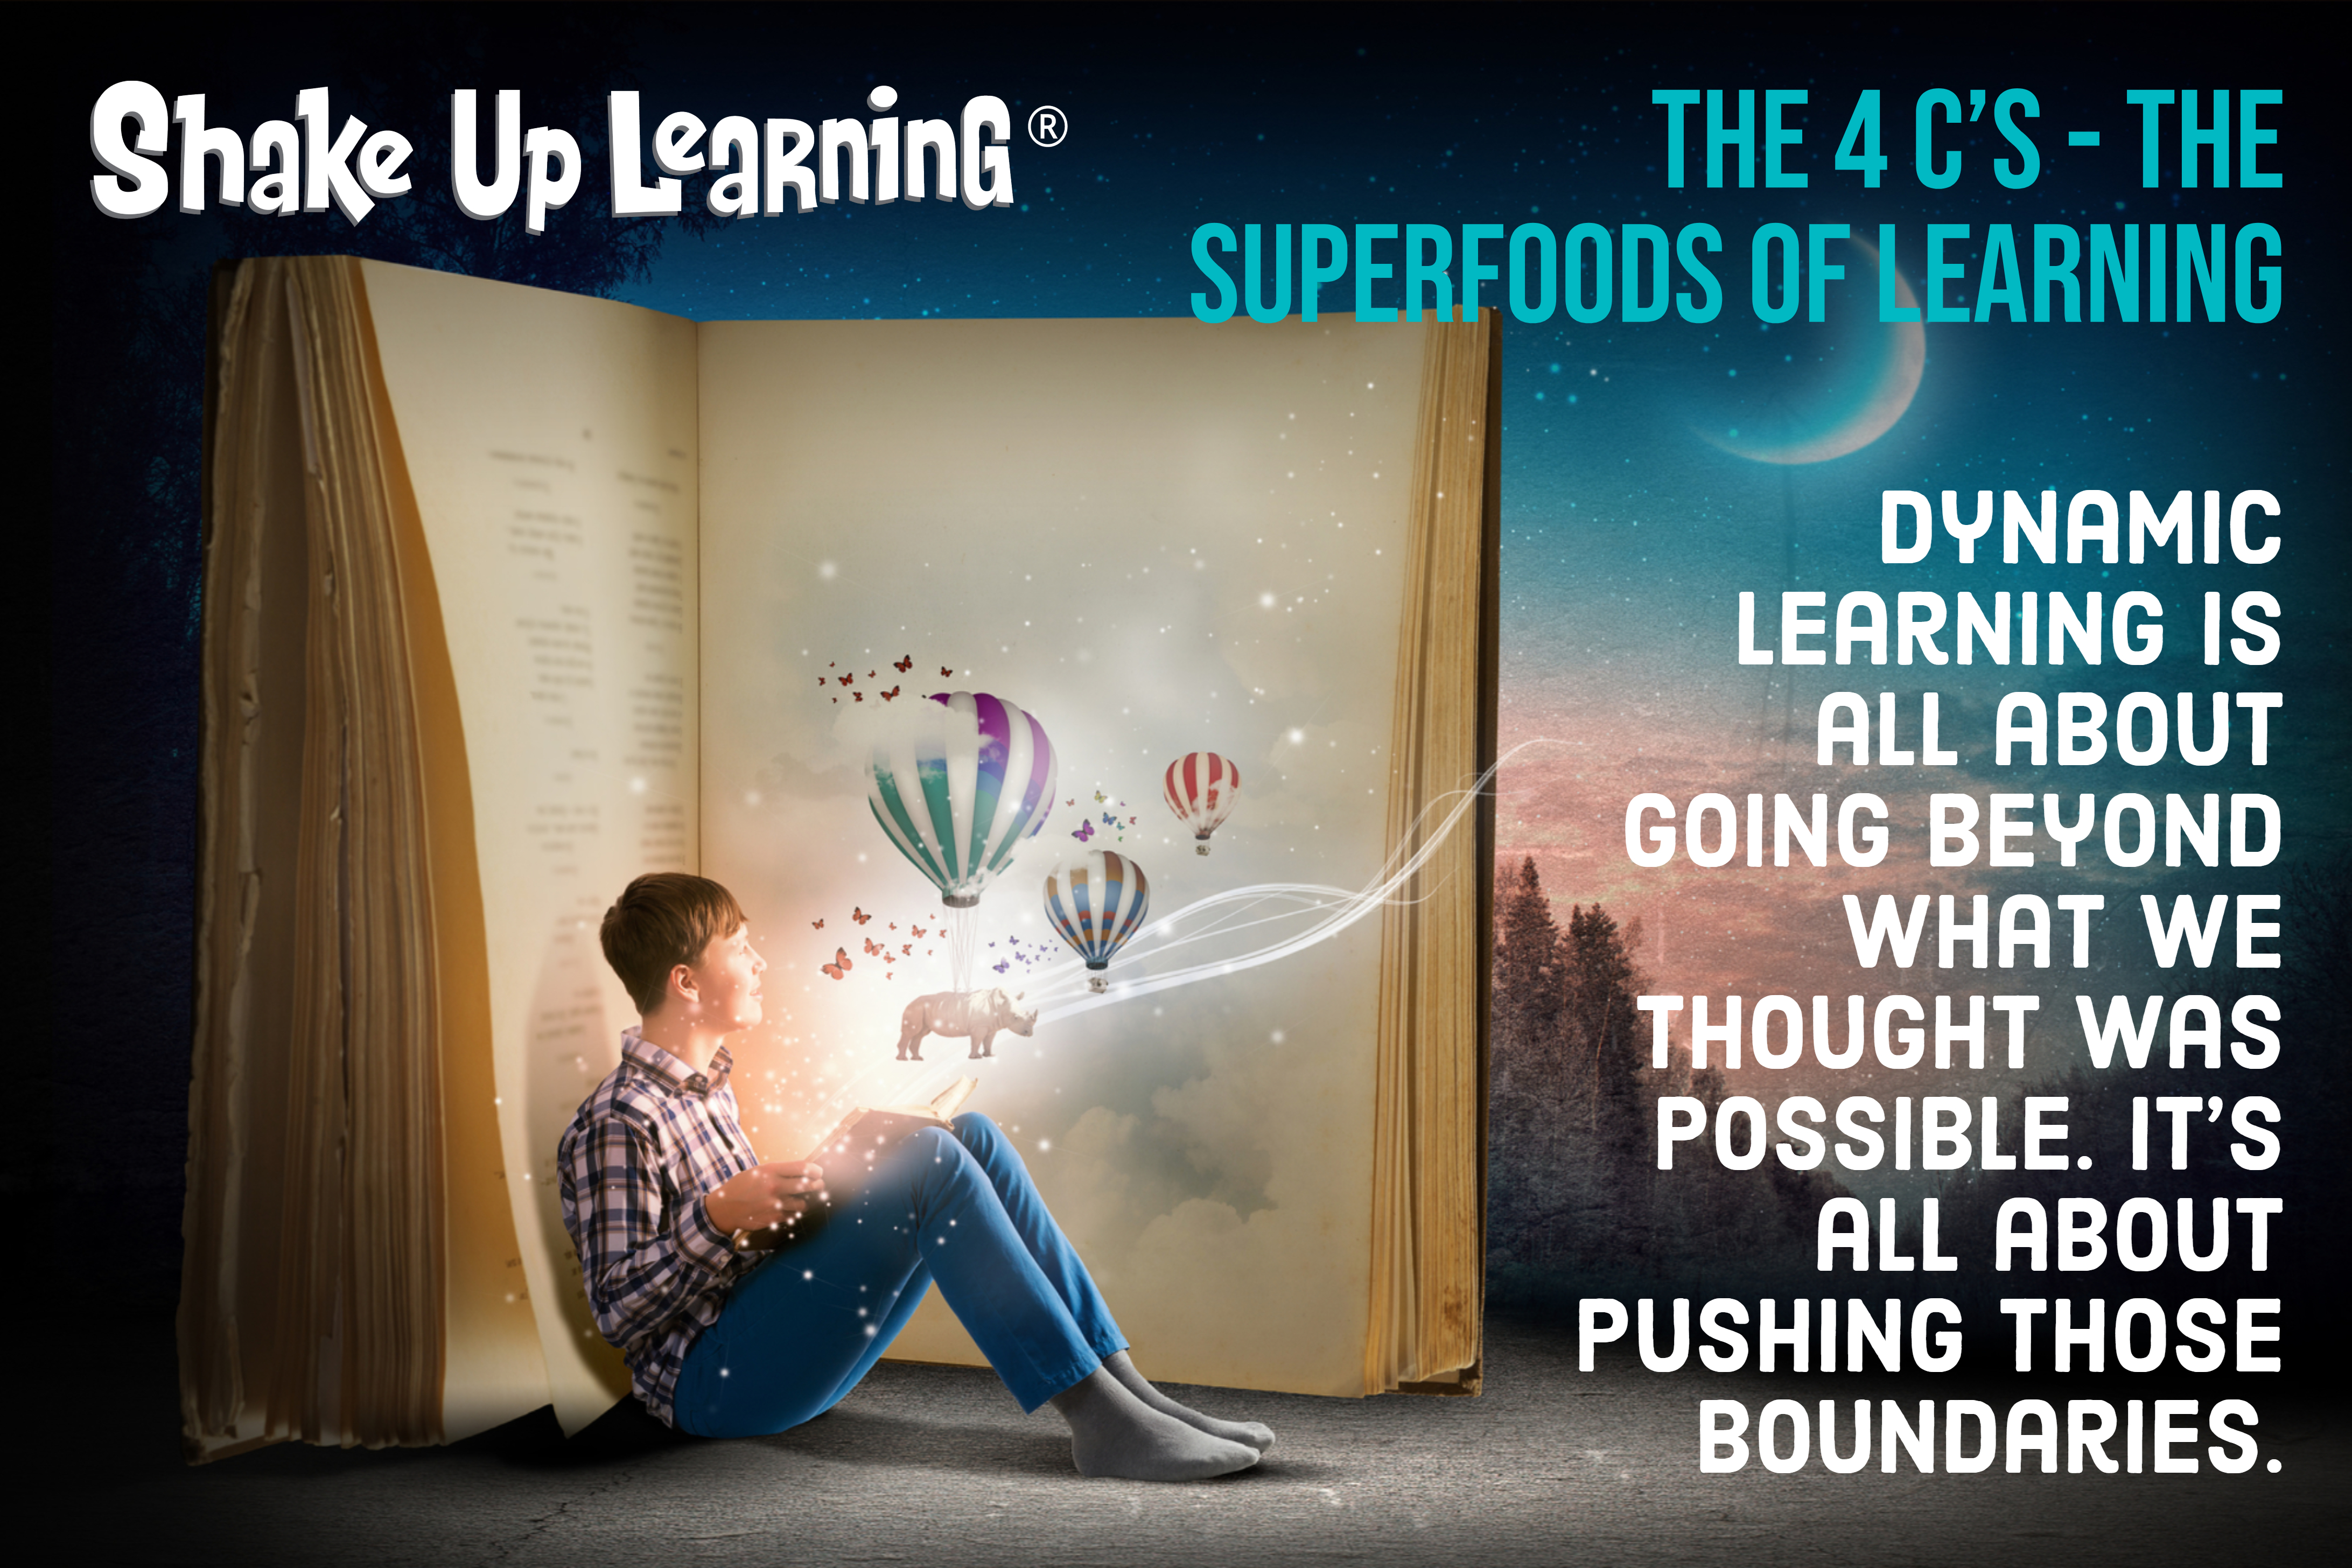 The 4 C's: The Superfoods of Learning - SULS002